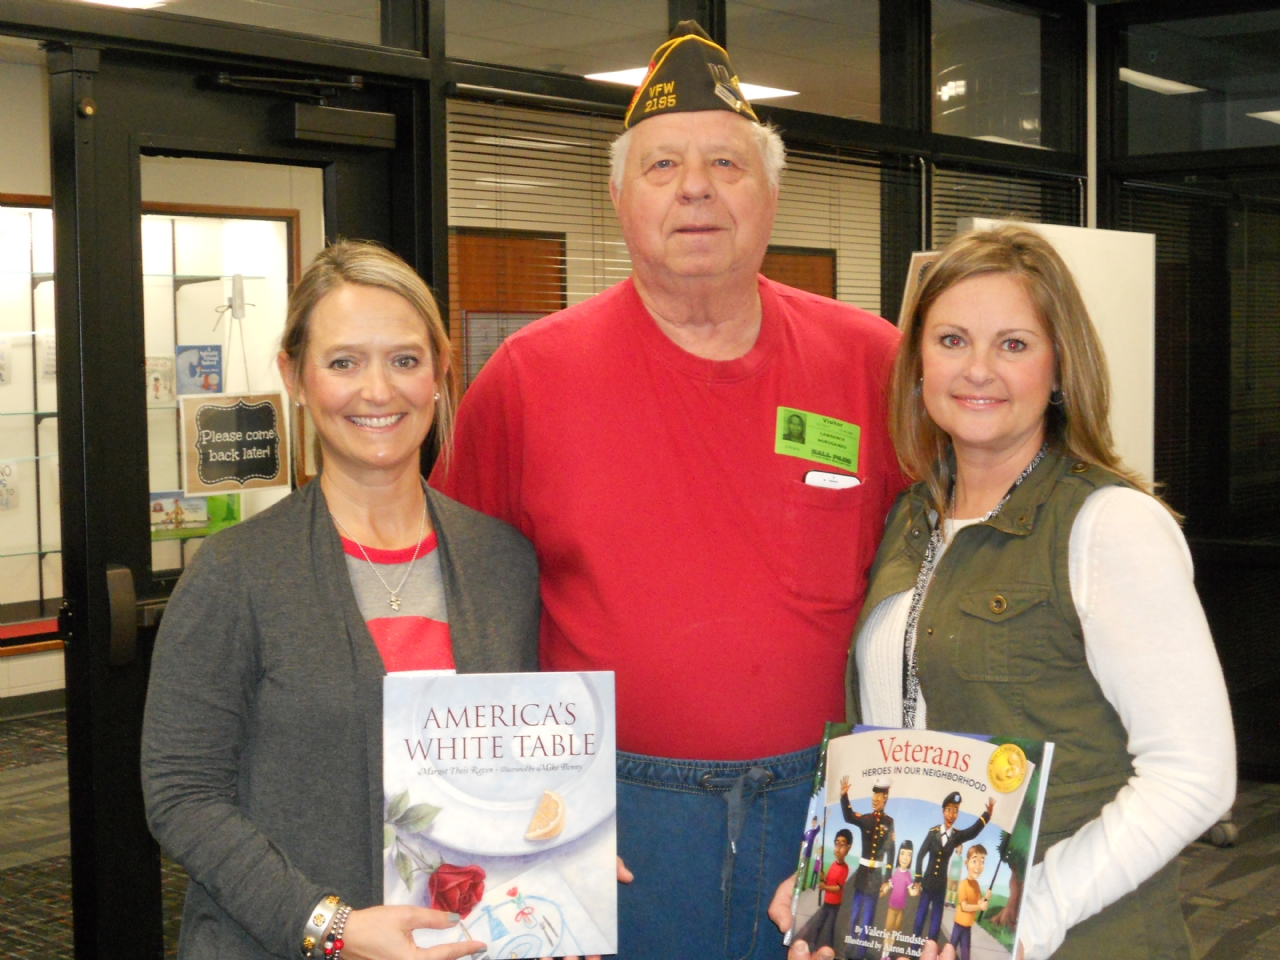 Each year as part of our POW/MIA program VFW Post 2195 donates, age appropriate books, about the military to local schools.